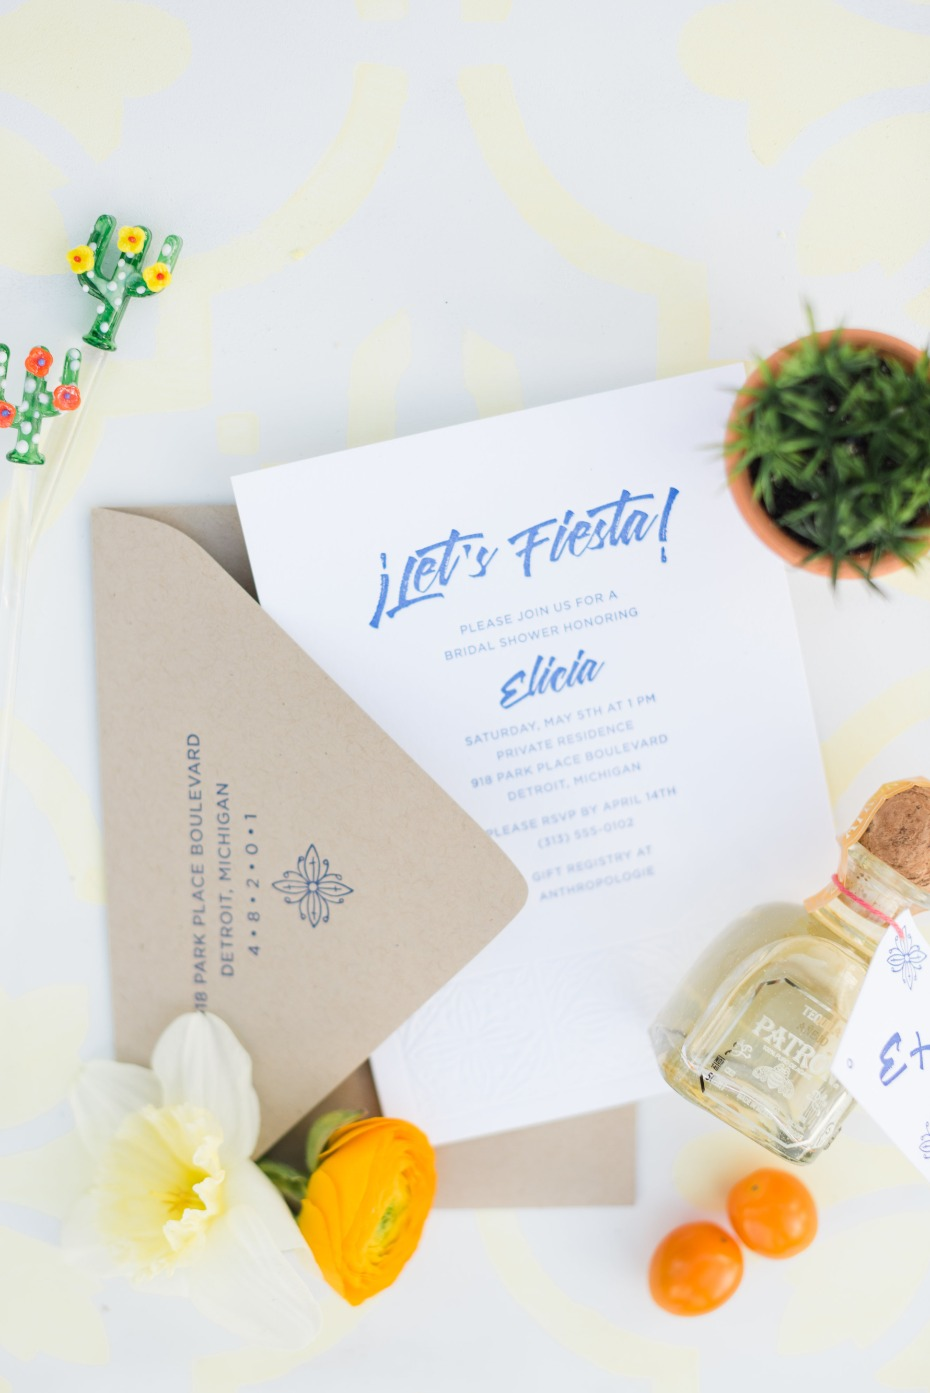 Lets Fiesta bridal shower invitation